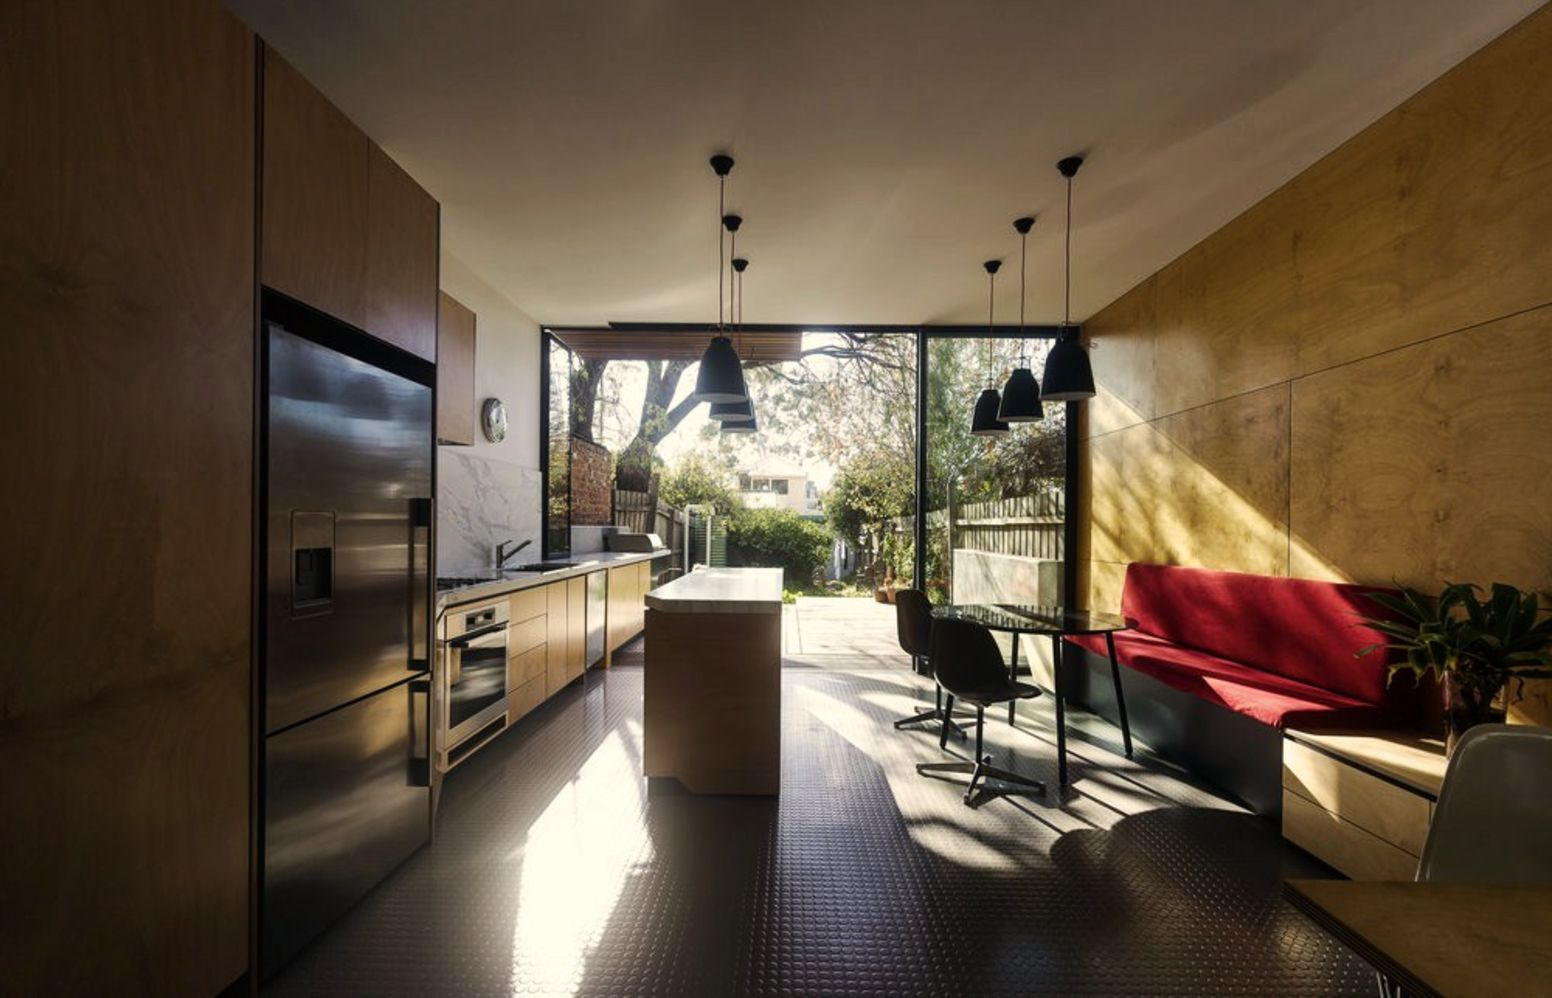 Modern house concept maximizing narrow area with brilliant spatial distribution strategy Moor House (8)